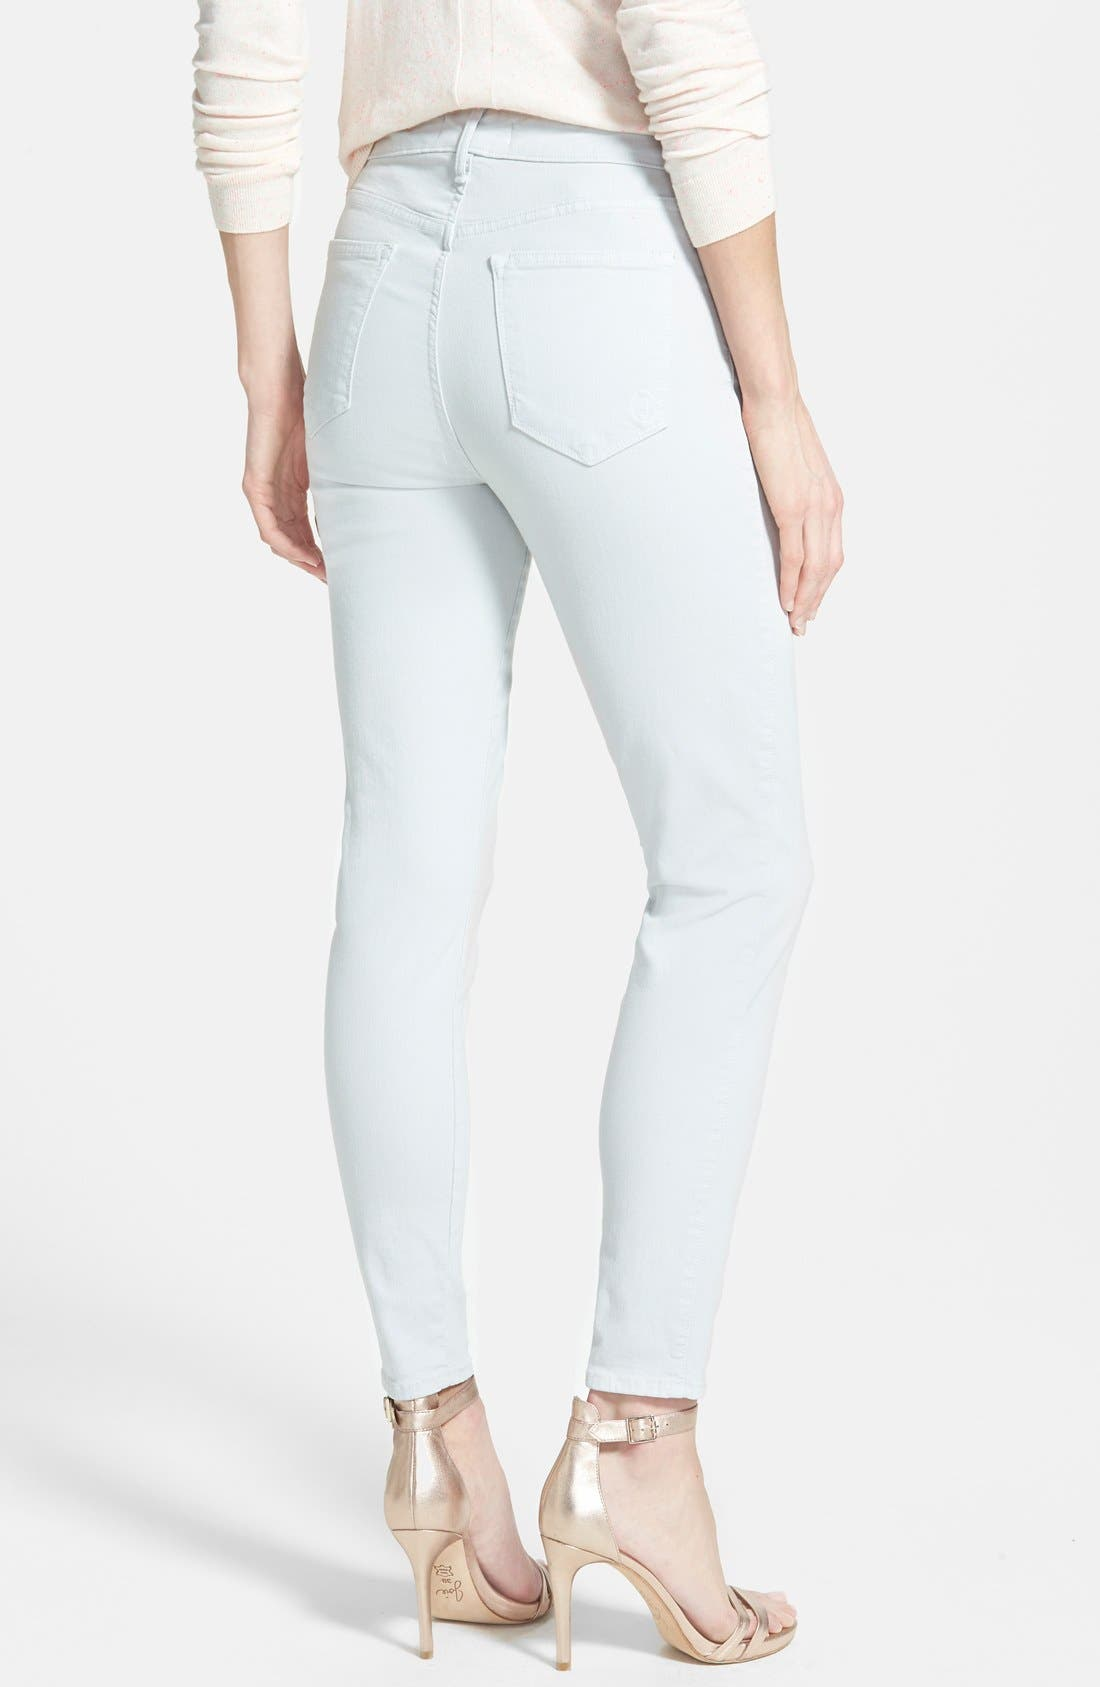 'Wisdom' Colored Stretch Ankle Skinny Jeans,                             Alternate thumbnail 2, color,                             098